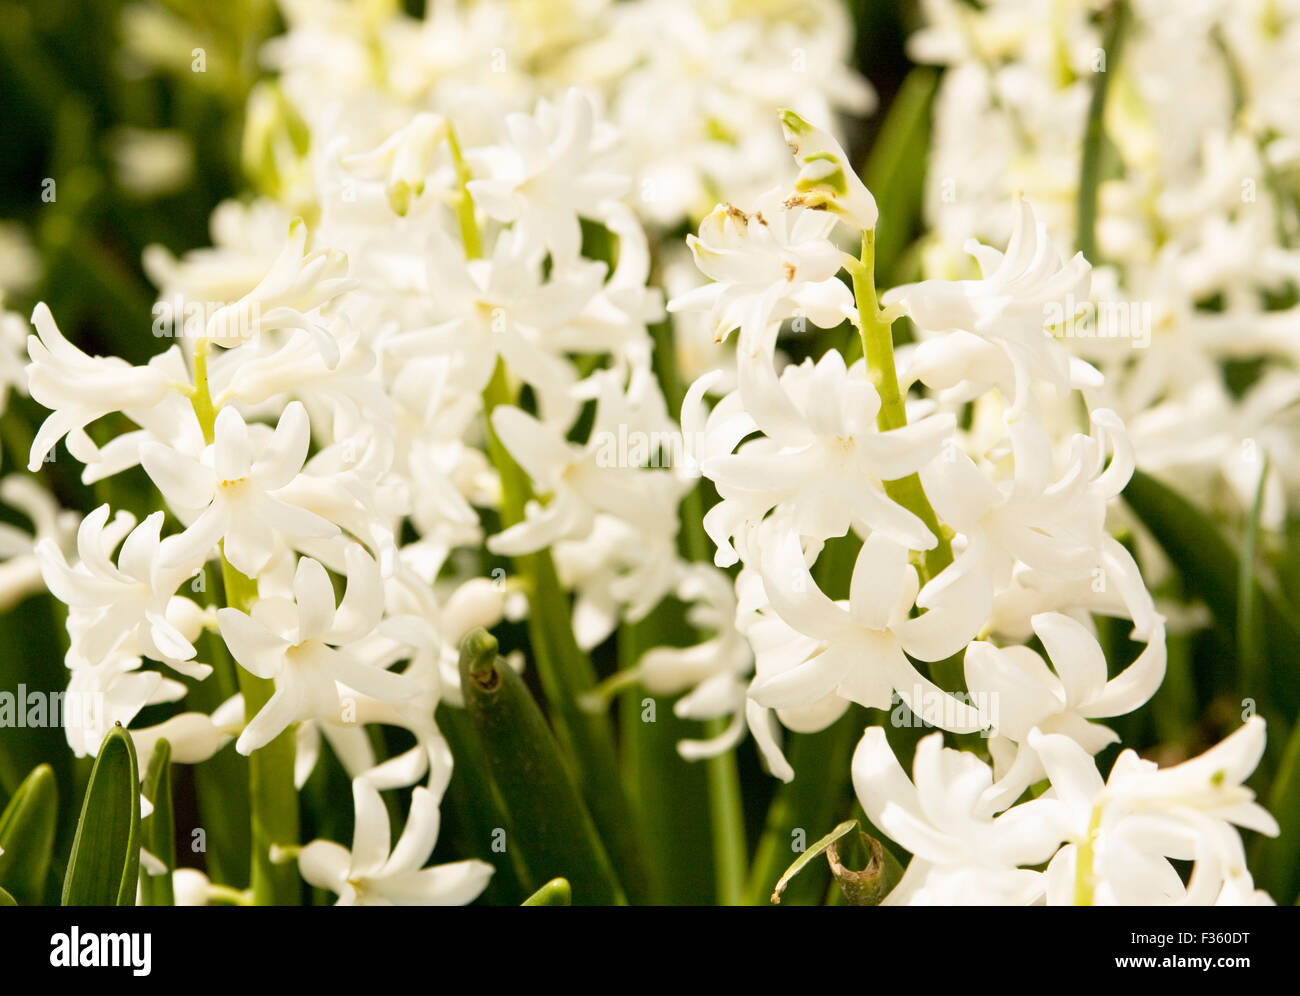 Few flowers hyacinth of white colour on flower bed stock photo few flowers hyacinth of white colour on flower bed mightylinksfo